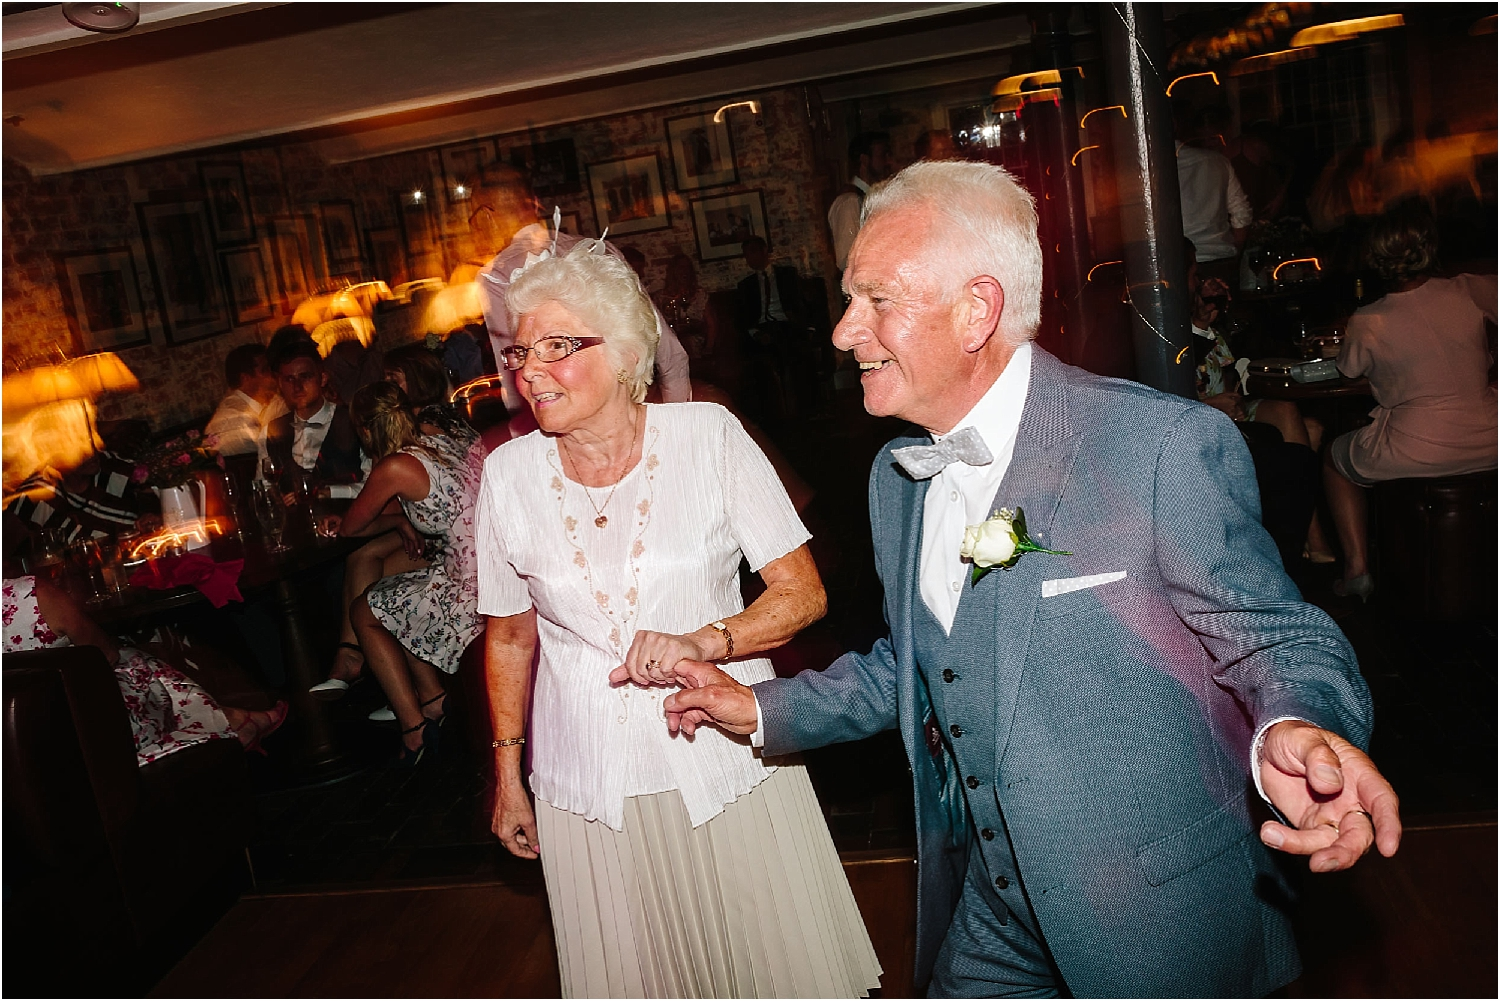 Wedding-west-mill-venue-professional-photographer-natural-documentary-nottingham-derby-442_BLOG.jpg